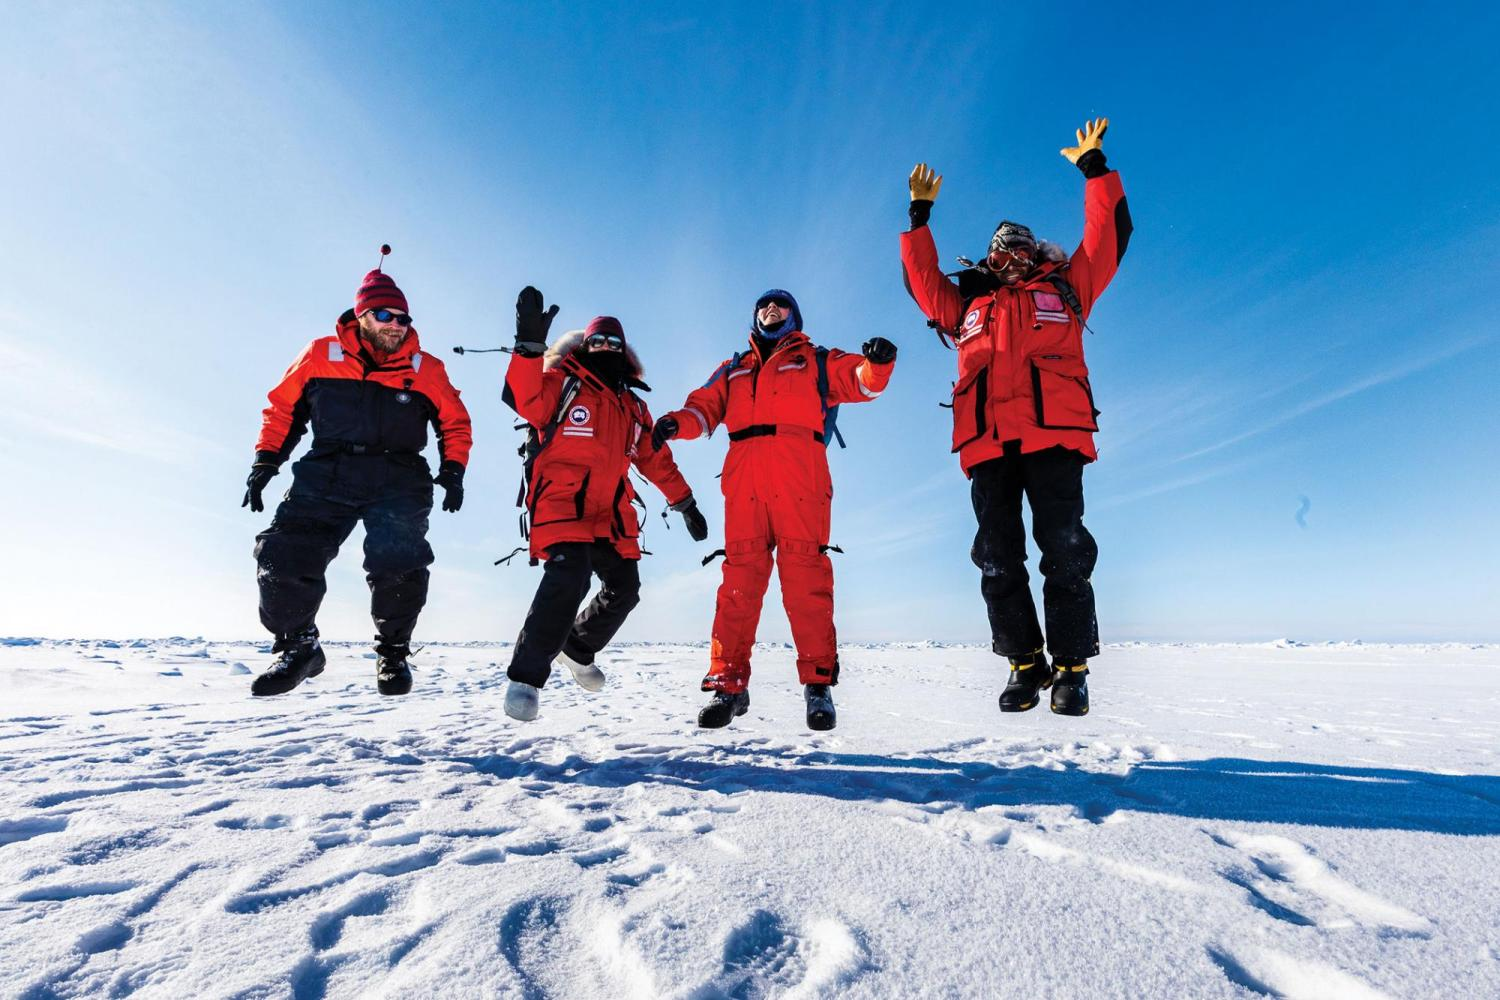 CU Boulder researchers jumping in the air in the arctic